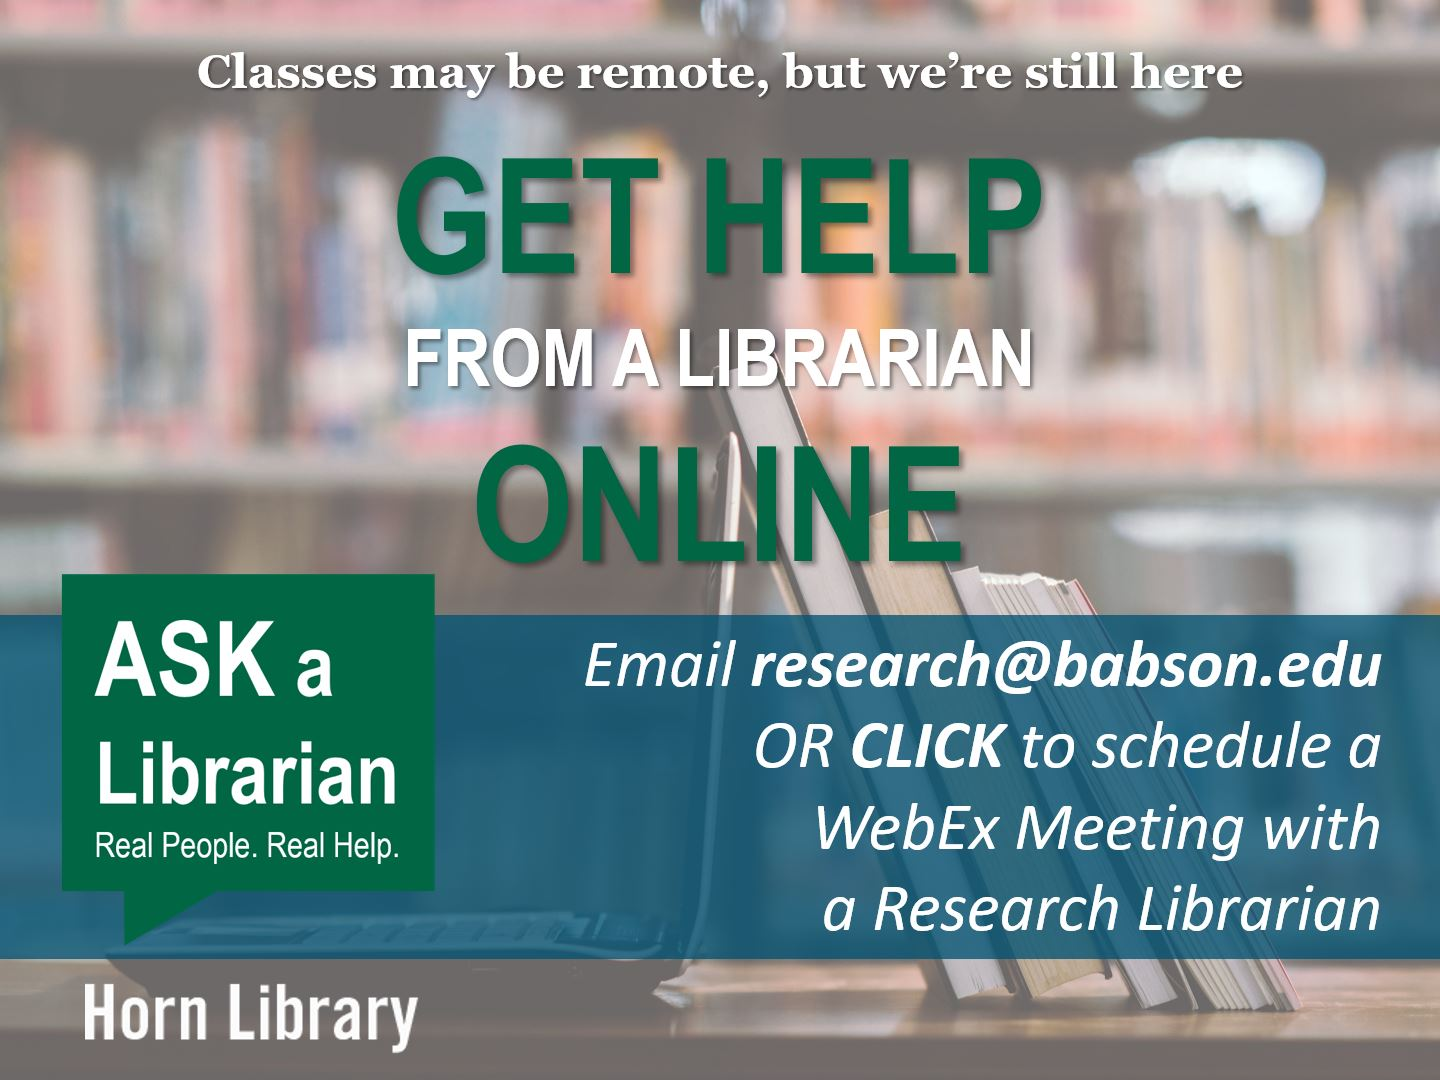 Classes may be remote, but we're still here. Get help from a librarian online. Email research@babson.edu or CLICK to schedule a WebEx Meeting with a Research Librarian. Ask a Librarian. Real people. Real help. Horn Library.